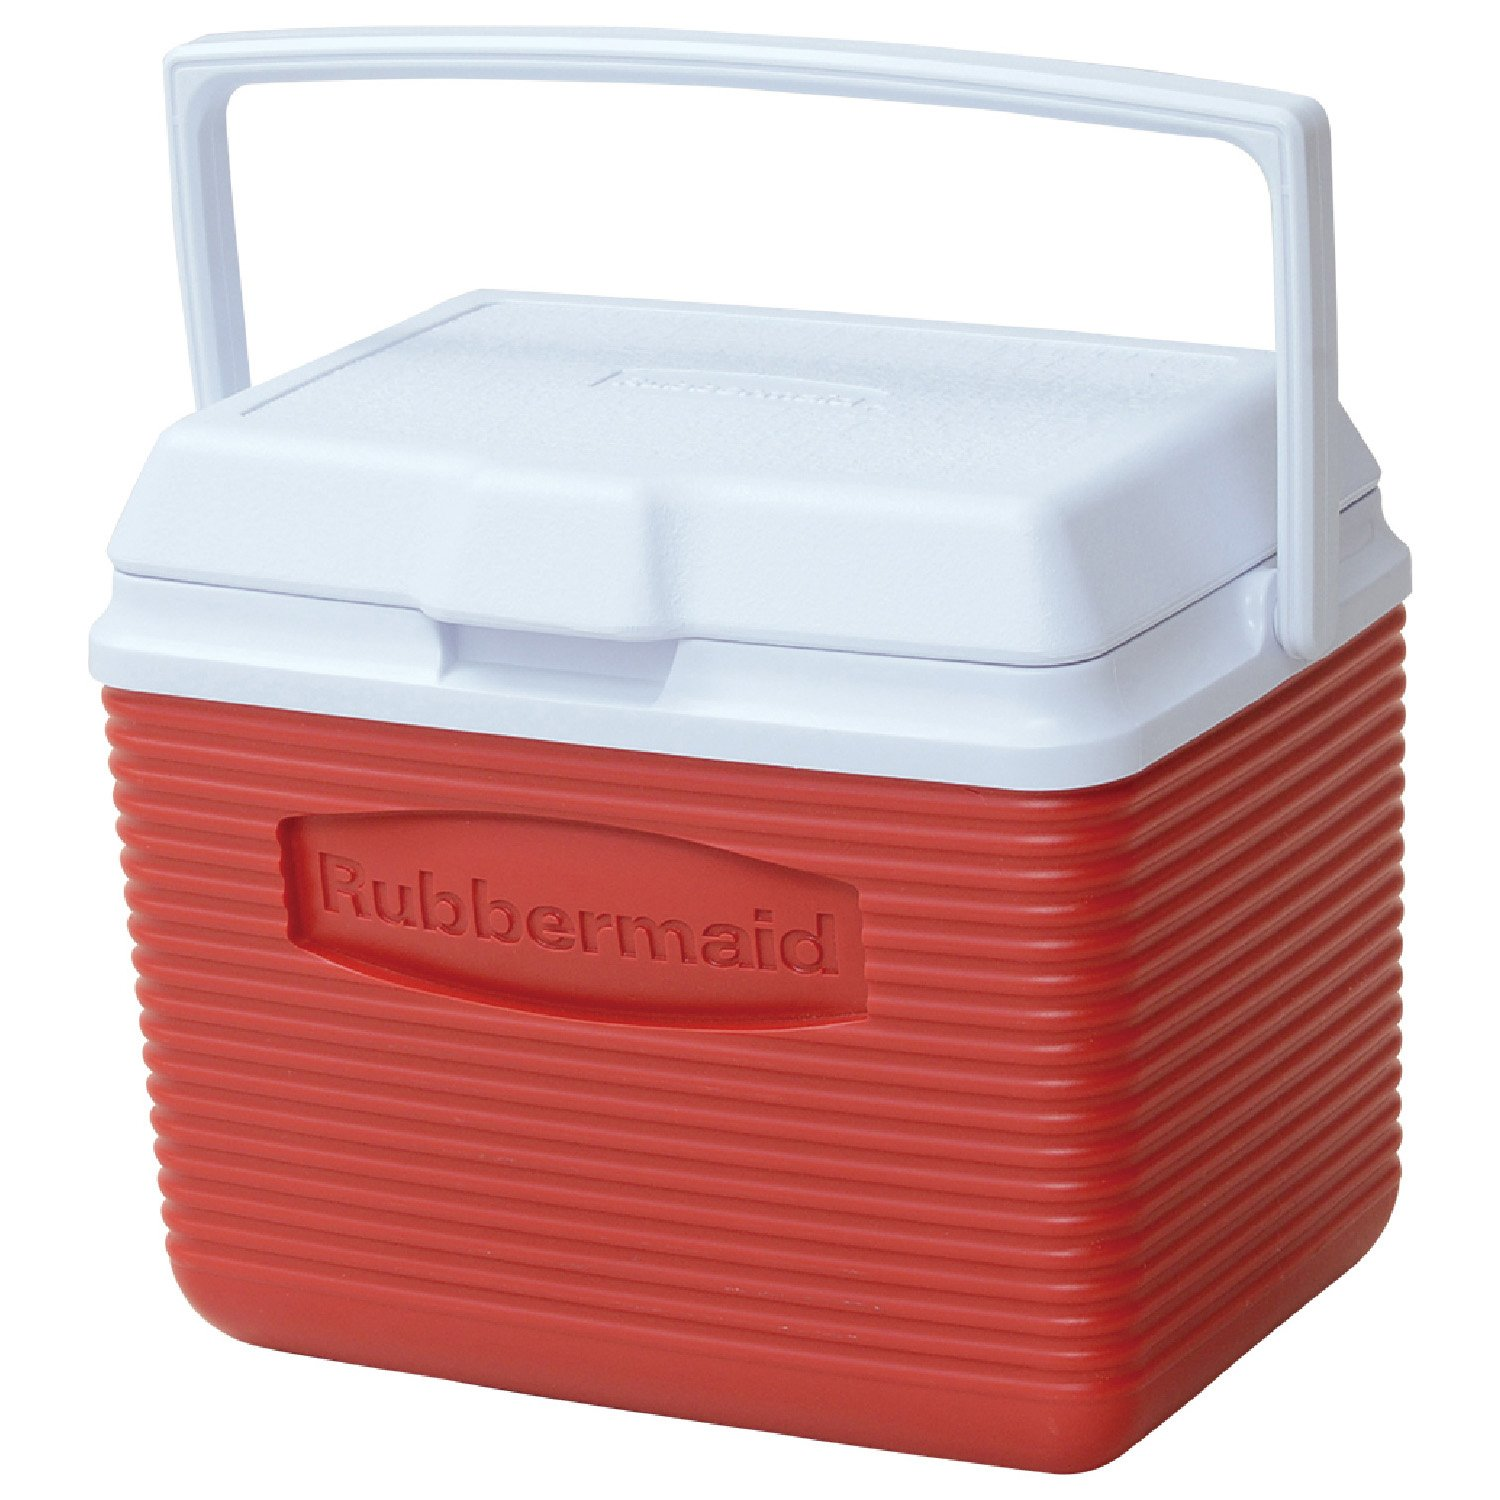 Ice Box Cooler : Rubbermaid quart personal ice chest cooler red new